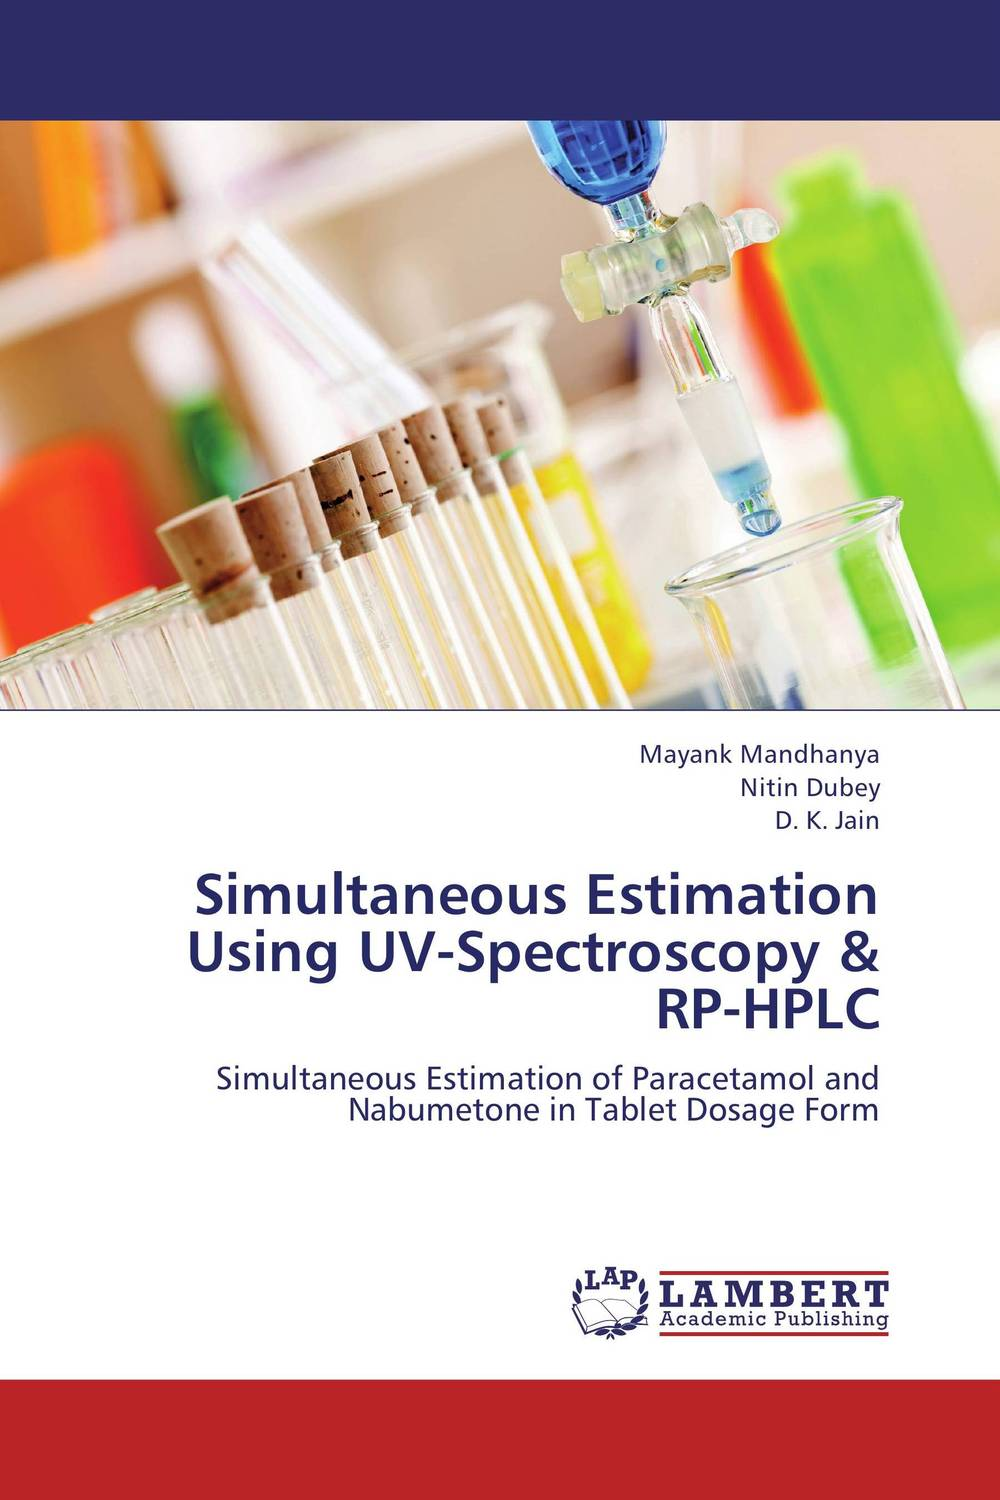 Simultaneous Estimation Using UV-Spectroscopy & RP-HPLC solving problems in analytical chemistry